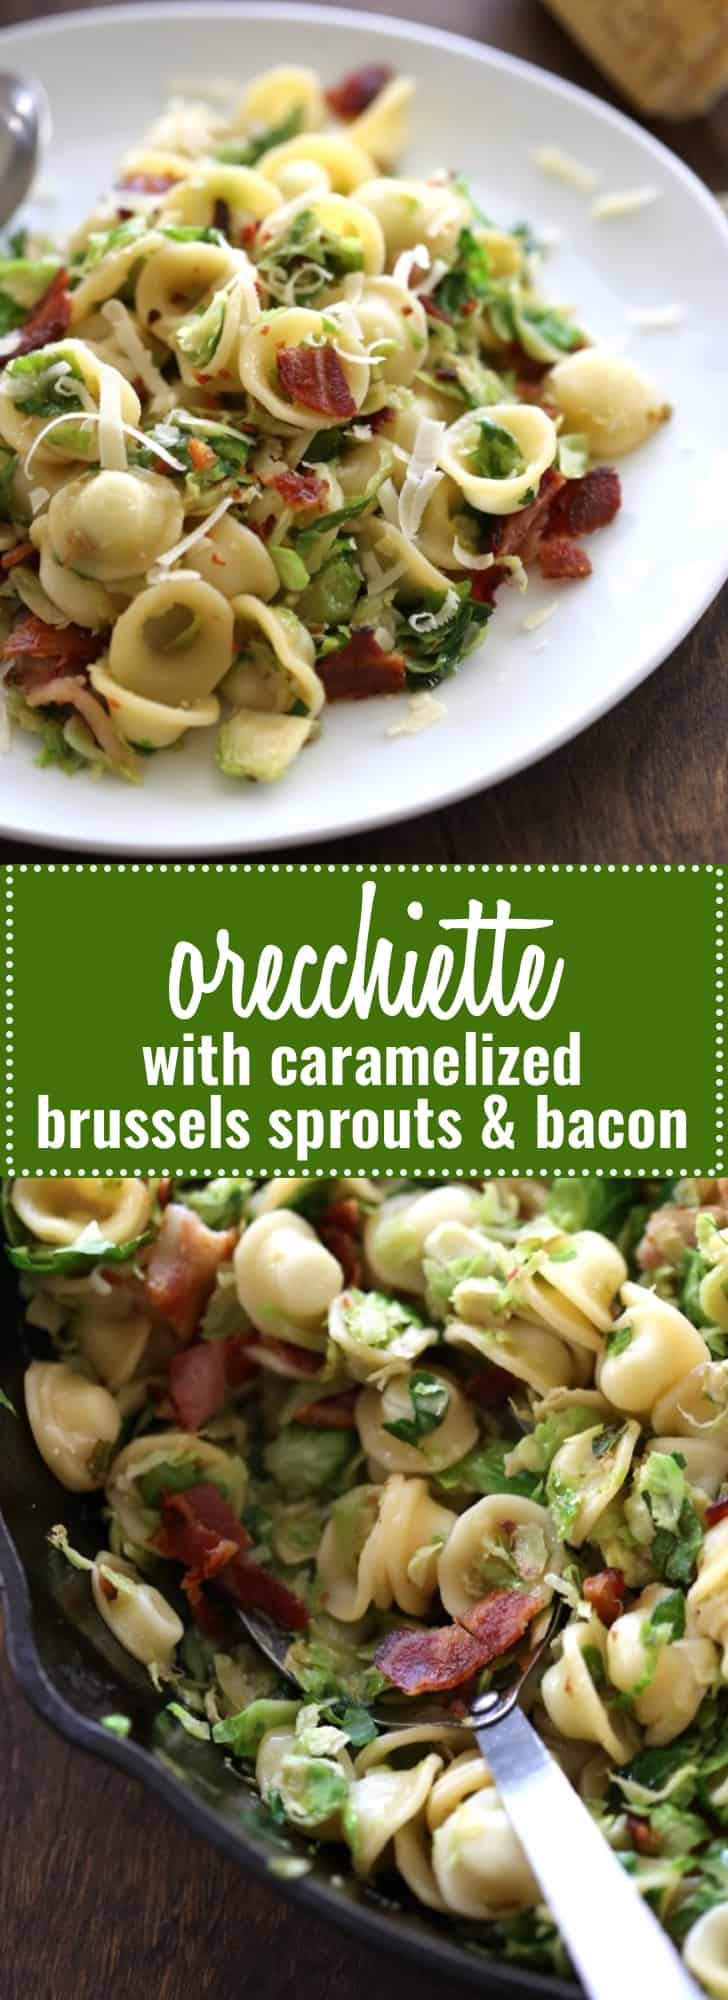 Orecchiette with Caramelized Brussels Sprouts and Bacon- Get some pasta boiling, crisp up bacon, caramelize brussels sprouts and toss it all in tangy cheese. It comes together in 35 minutes flat and tastes like the comfort food answer to a chilly winter night.